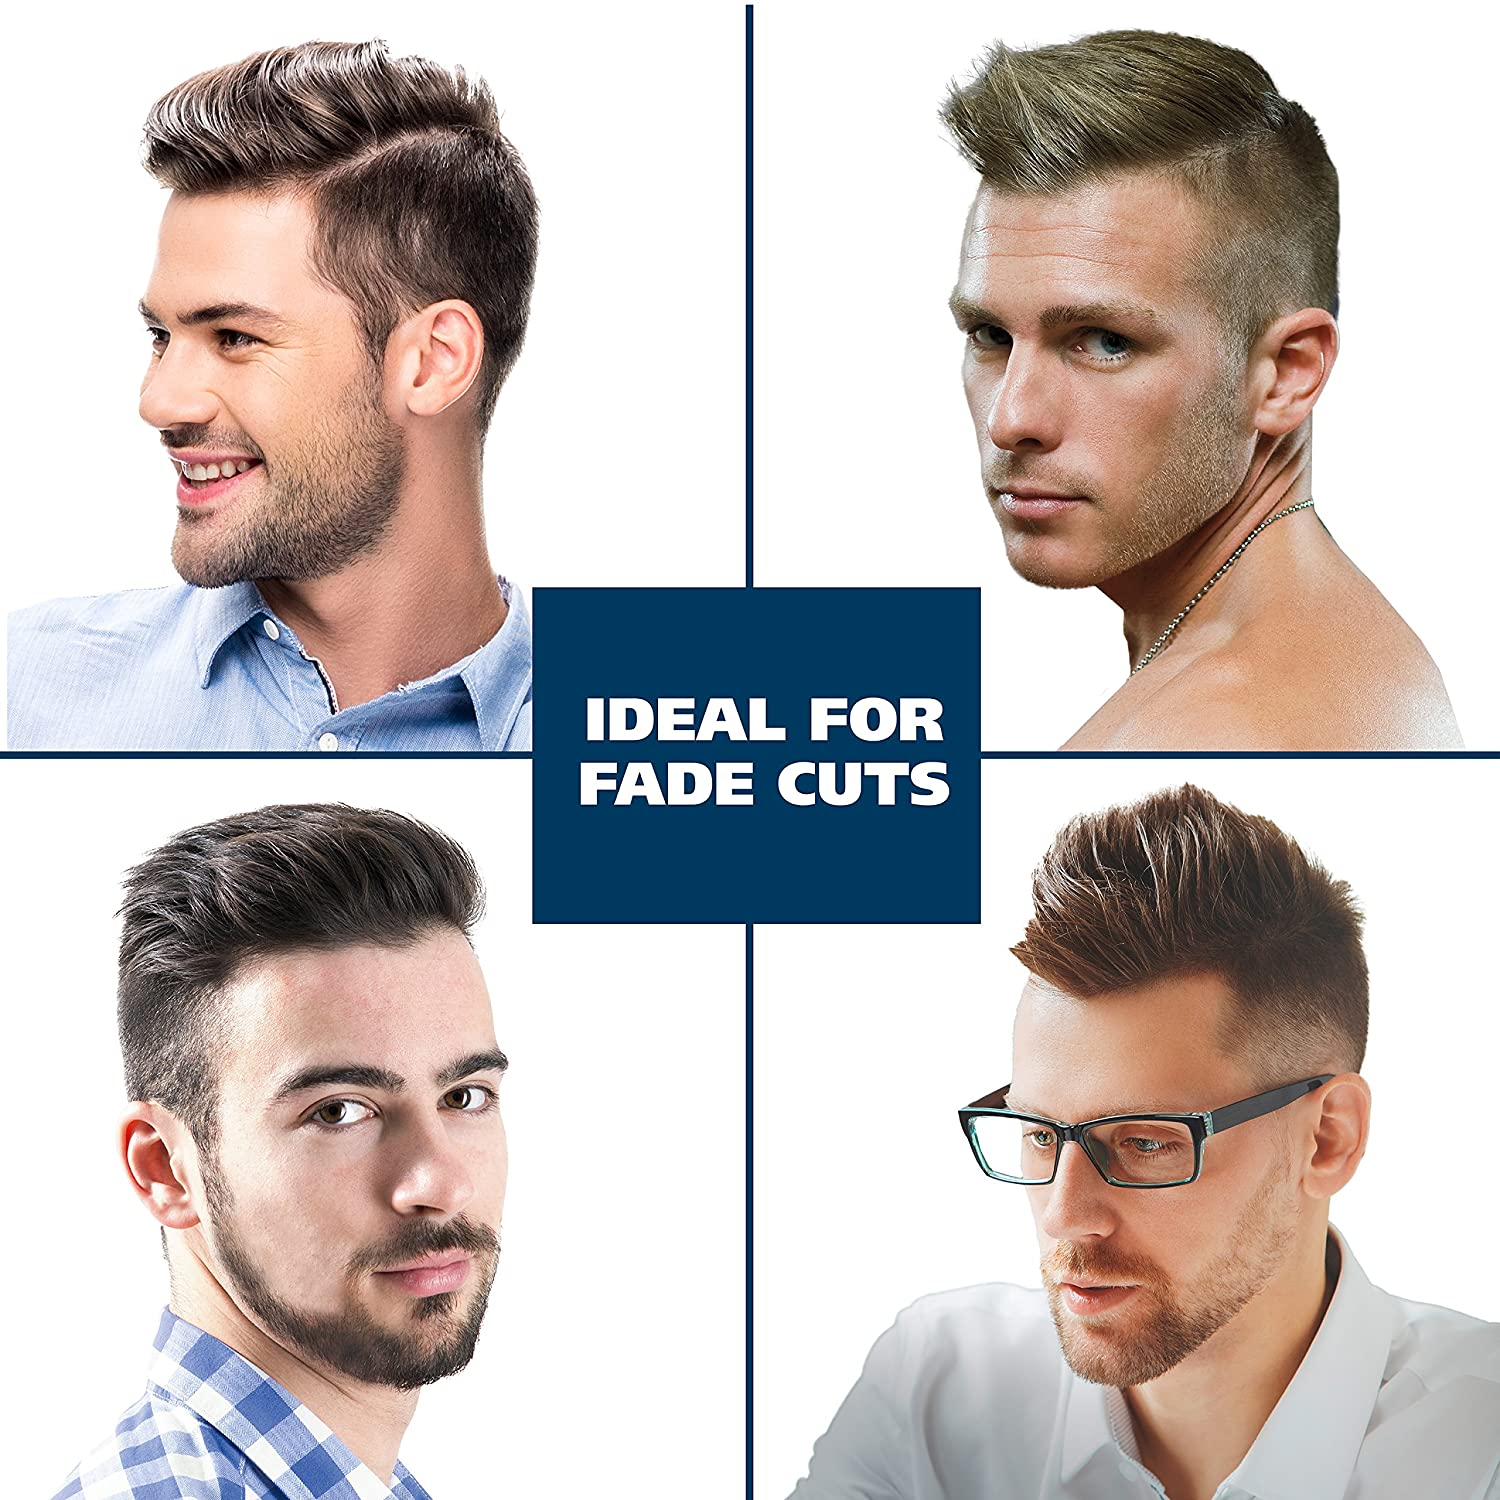 Amazon Wahl Clipper Fade Cut Haircutting Kit 79445 Trimming